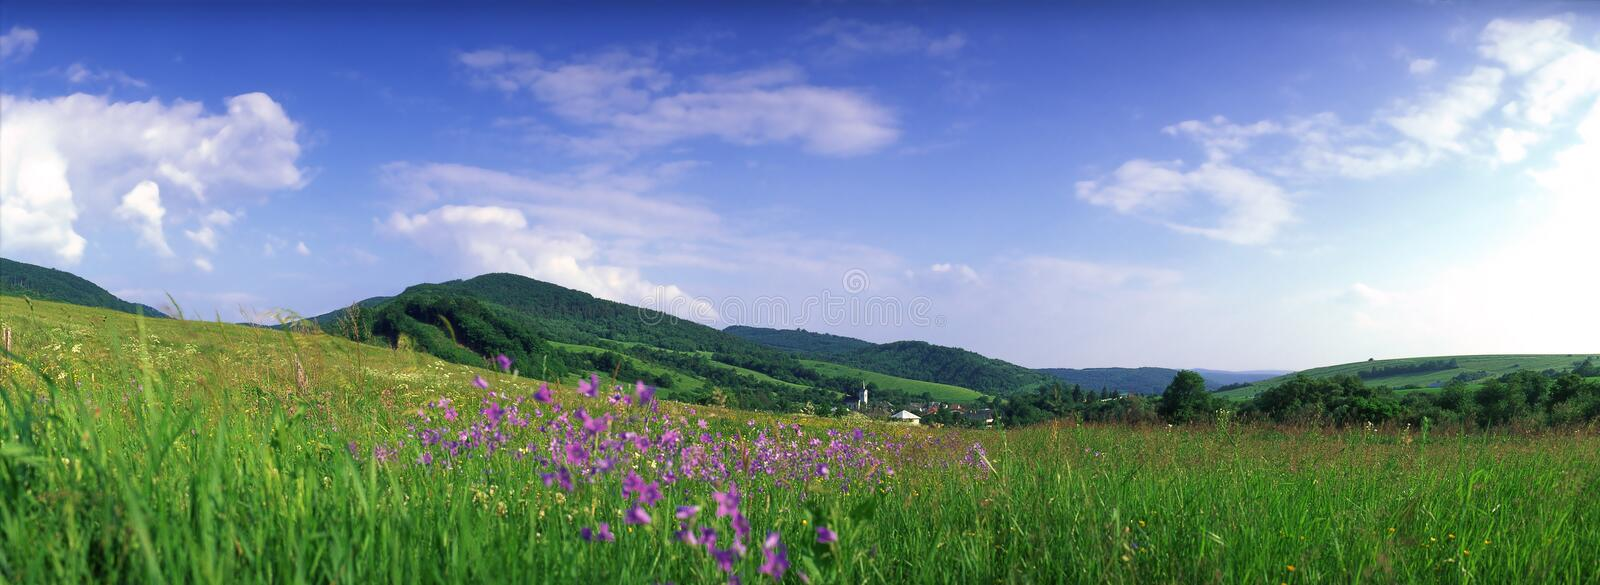 Mountain meadow panorama. Mountain meadow in spring, Lower Beskids, Central Carpathians, Slovakia royalty free stock photos